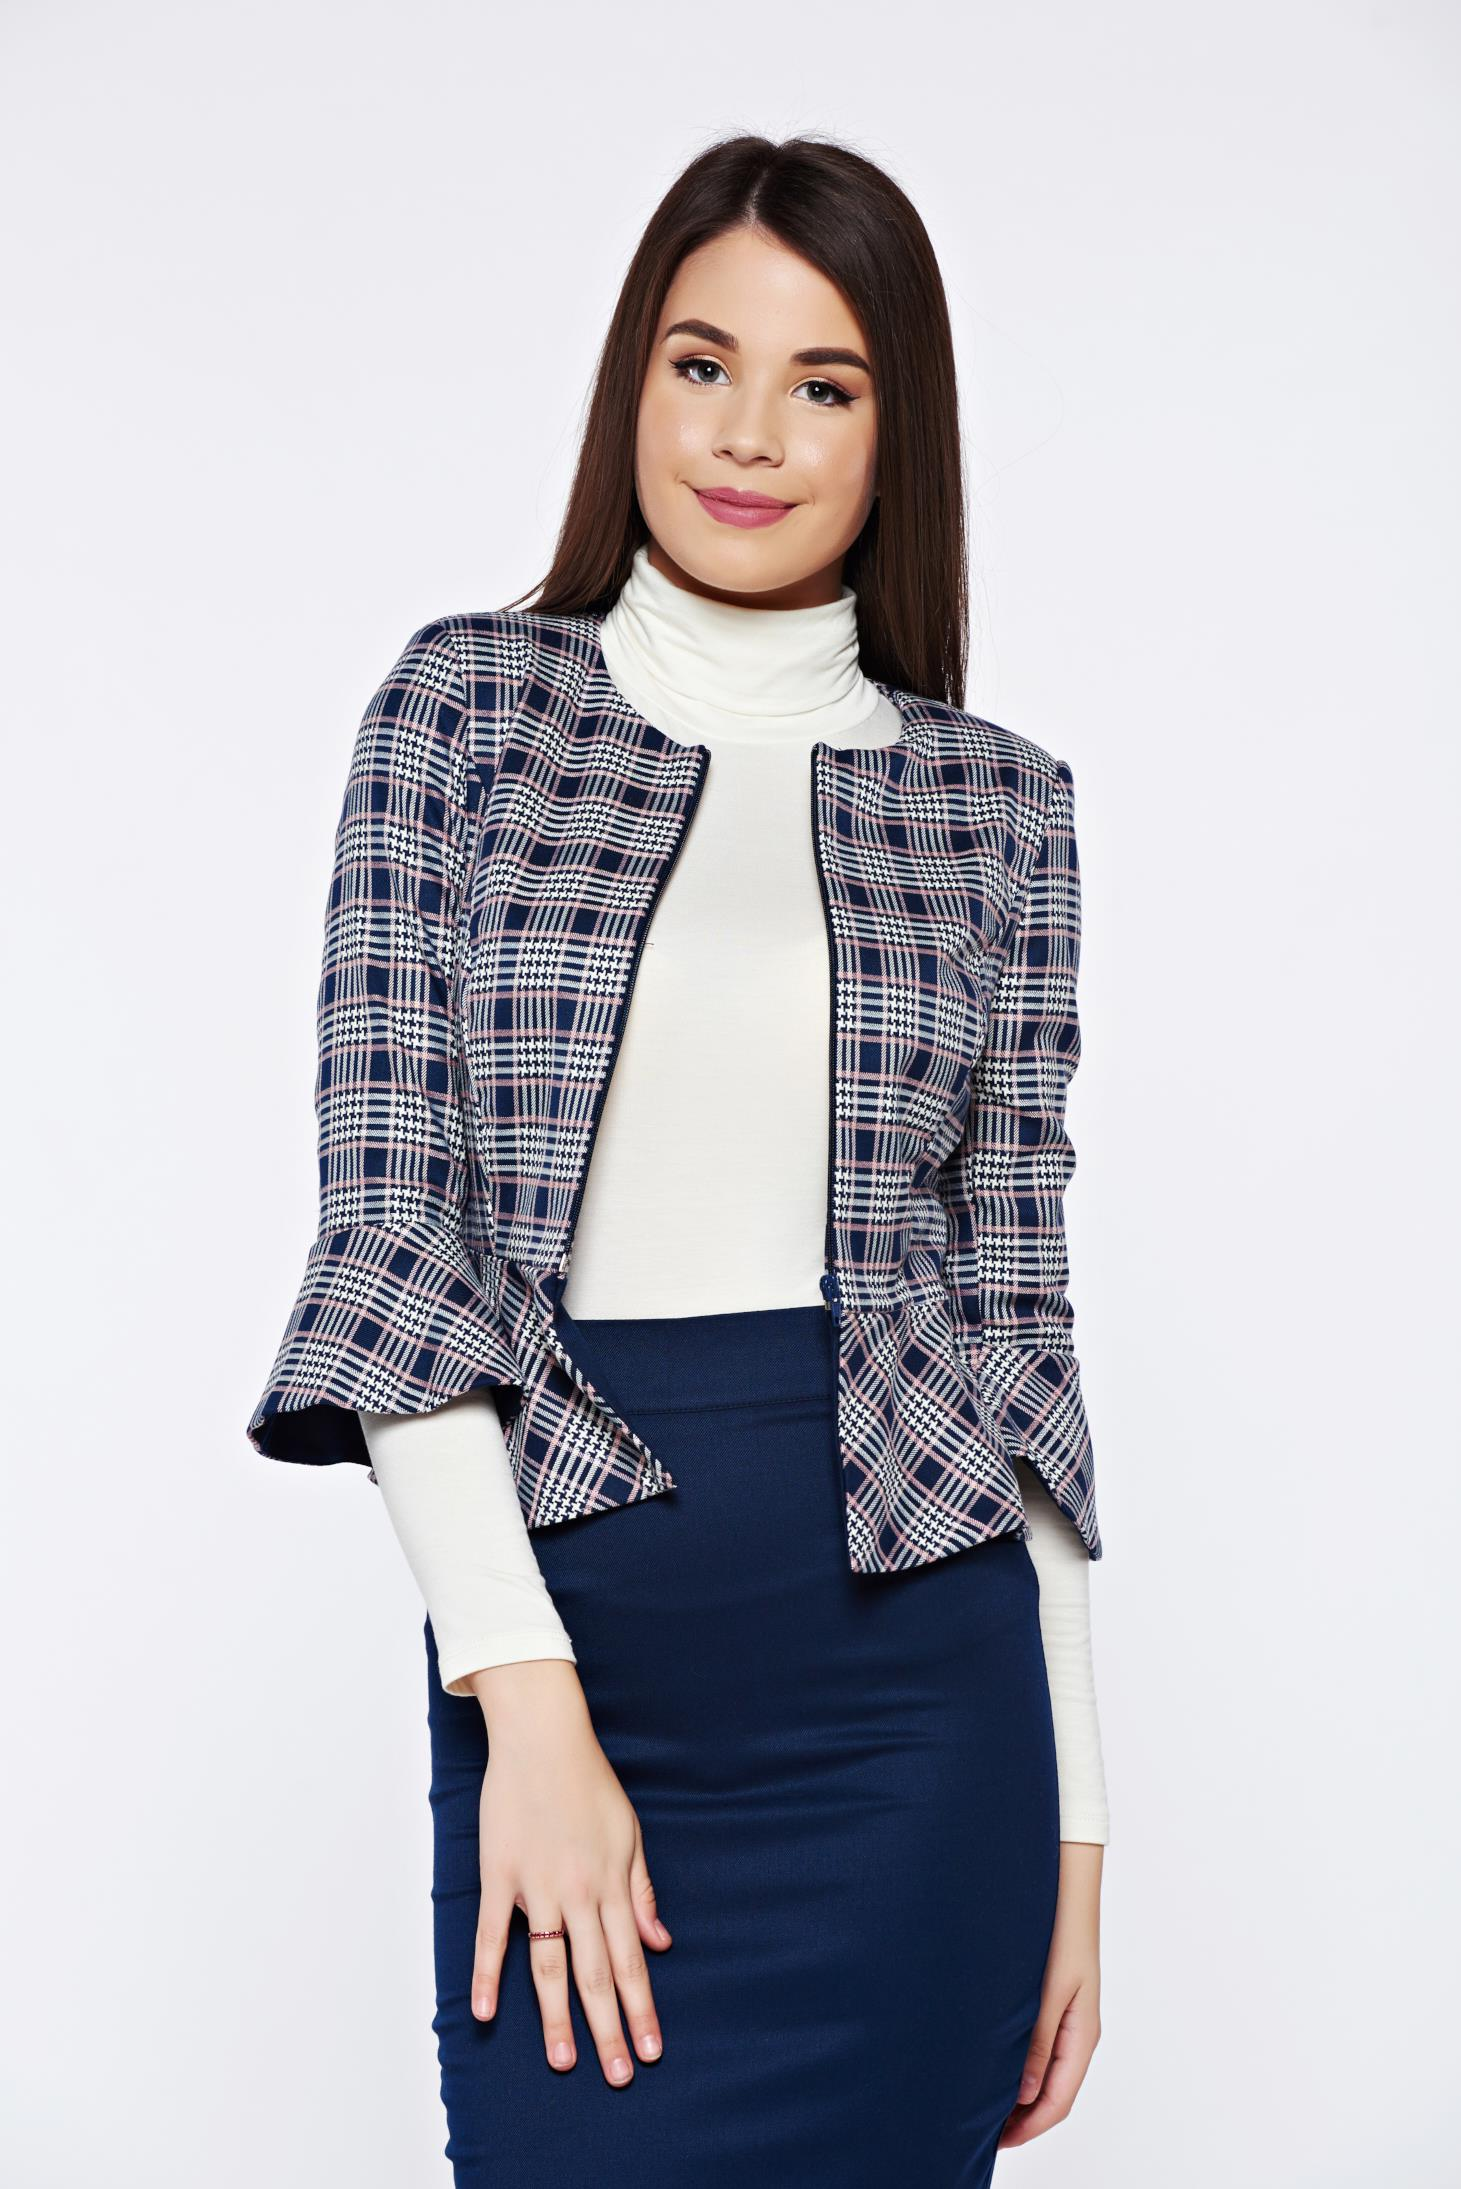 Fofy darkblue office elegant jacket with chequers